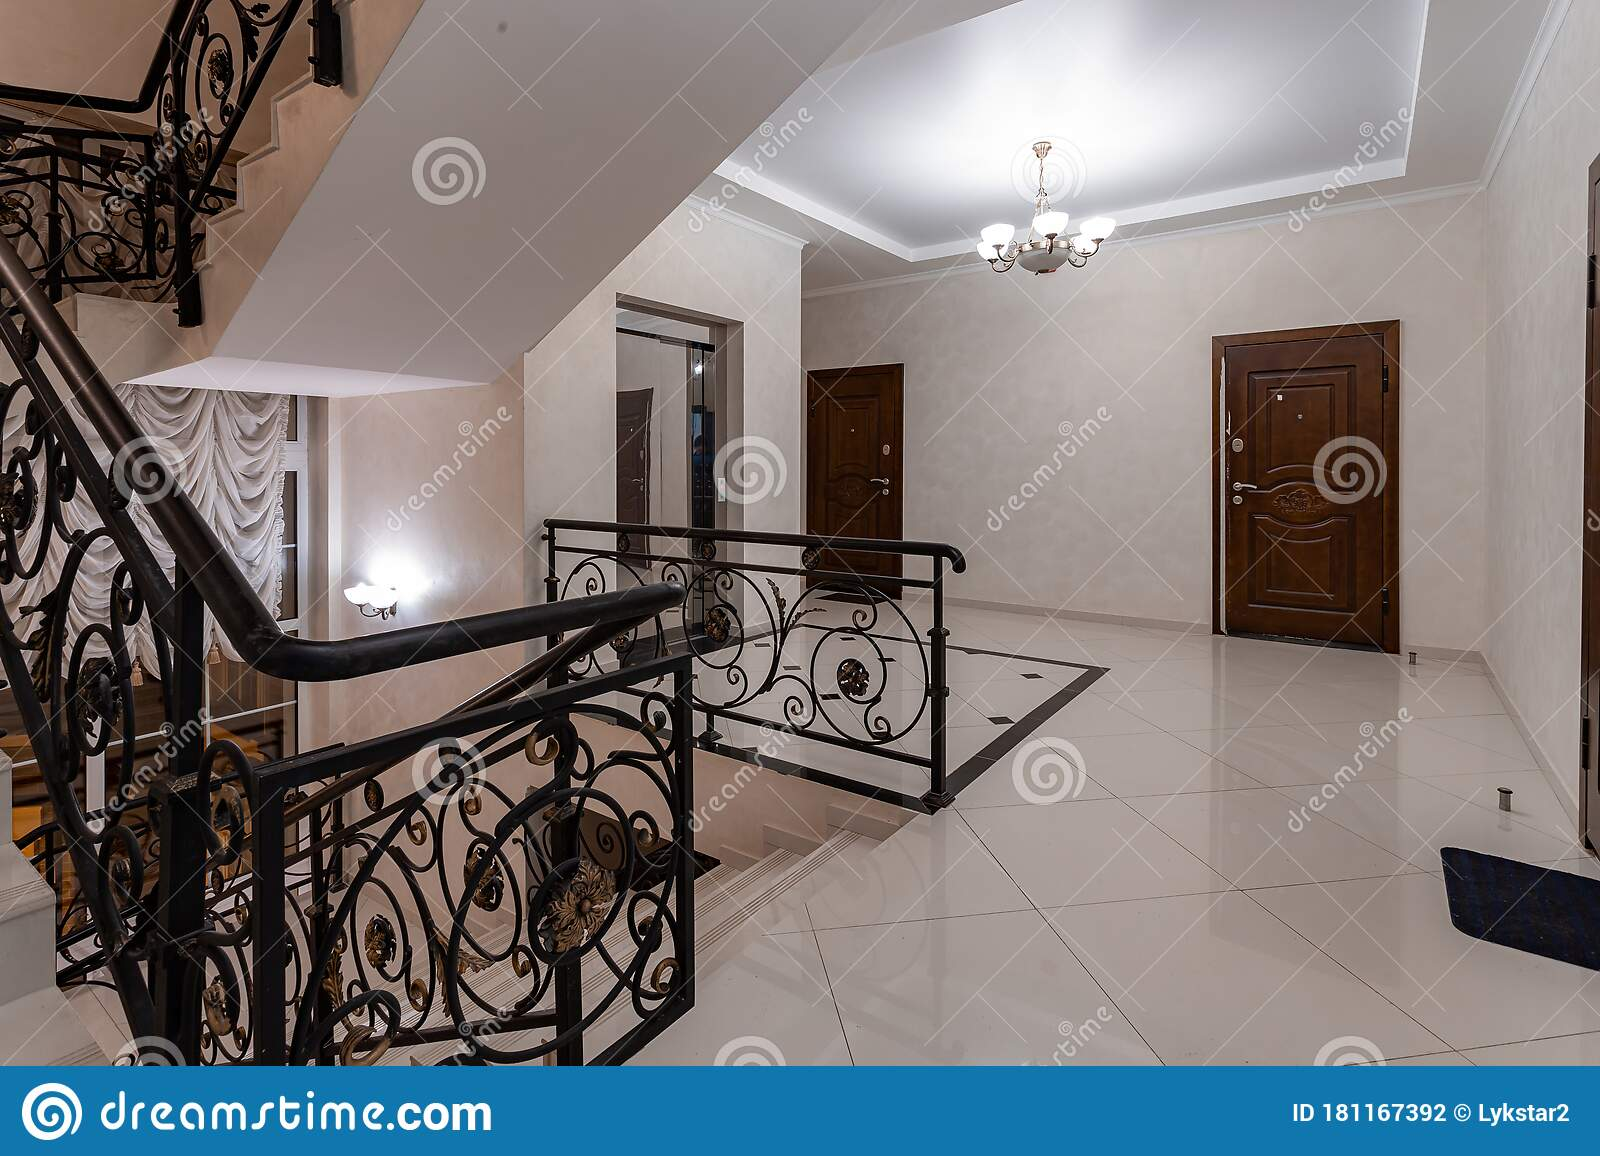 Spacious Entrance Hall With Light Walls And Marble Floor Front Entrance Foyer Entrance Hall Stock Photo Image Of Background Design 181167392